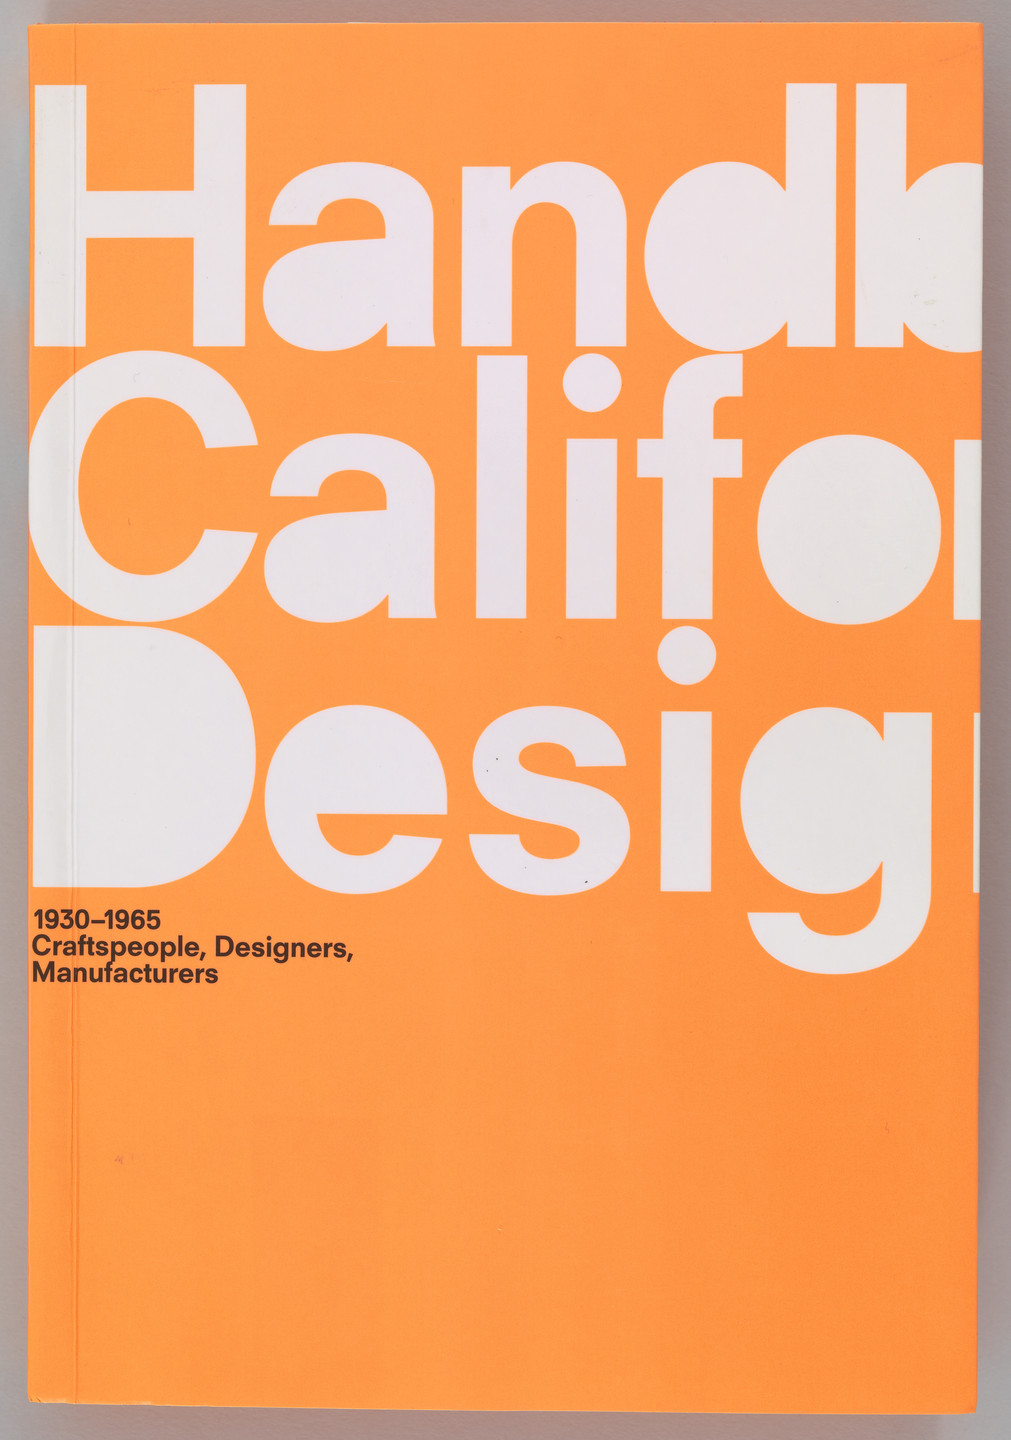 Irma Boom. Handbook of California Design. 2013